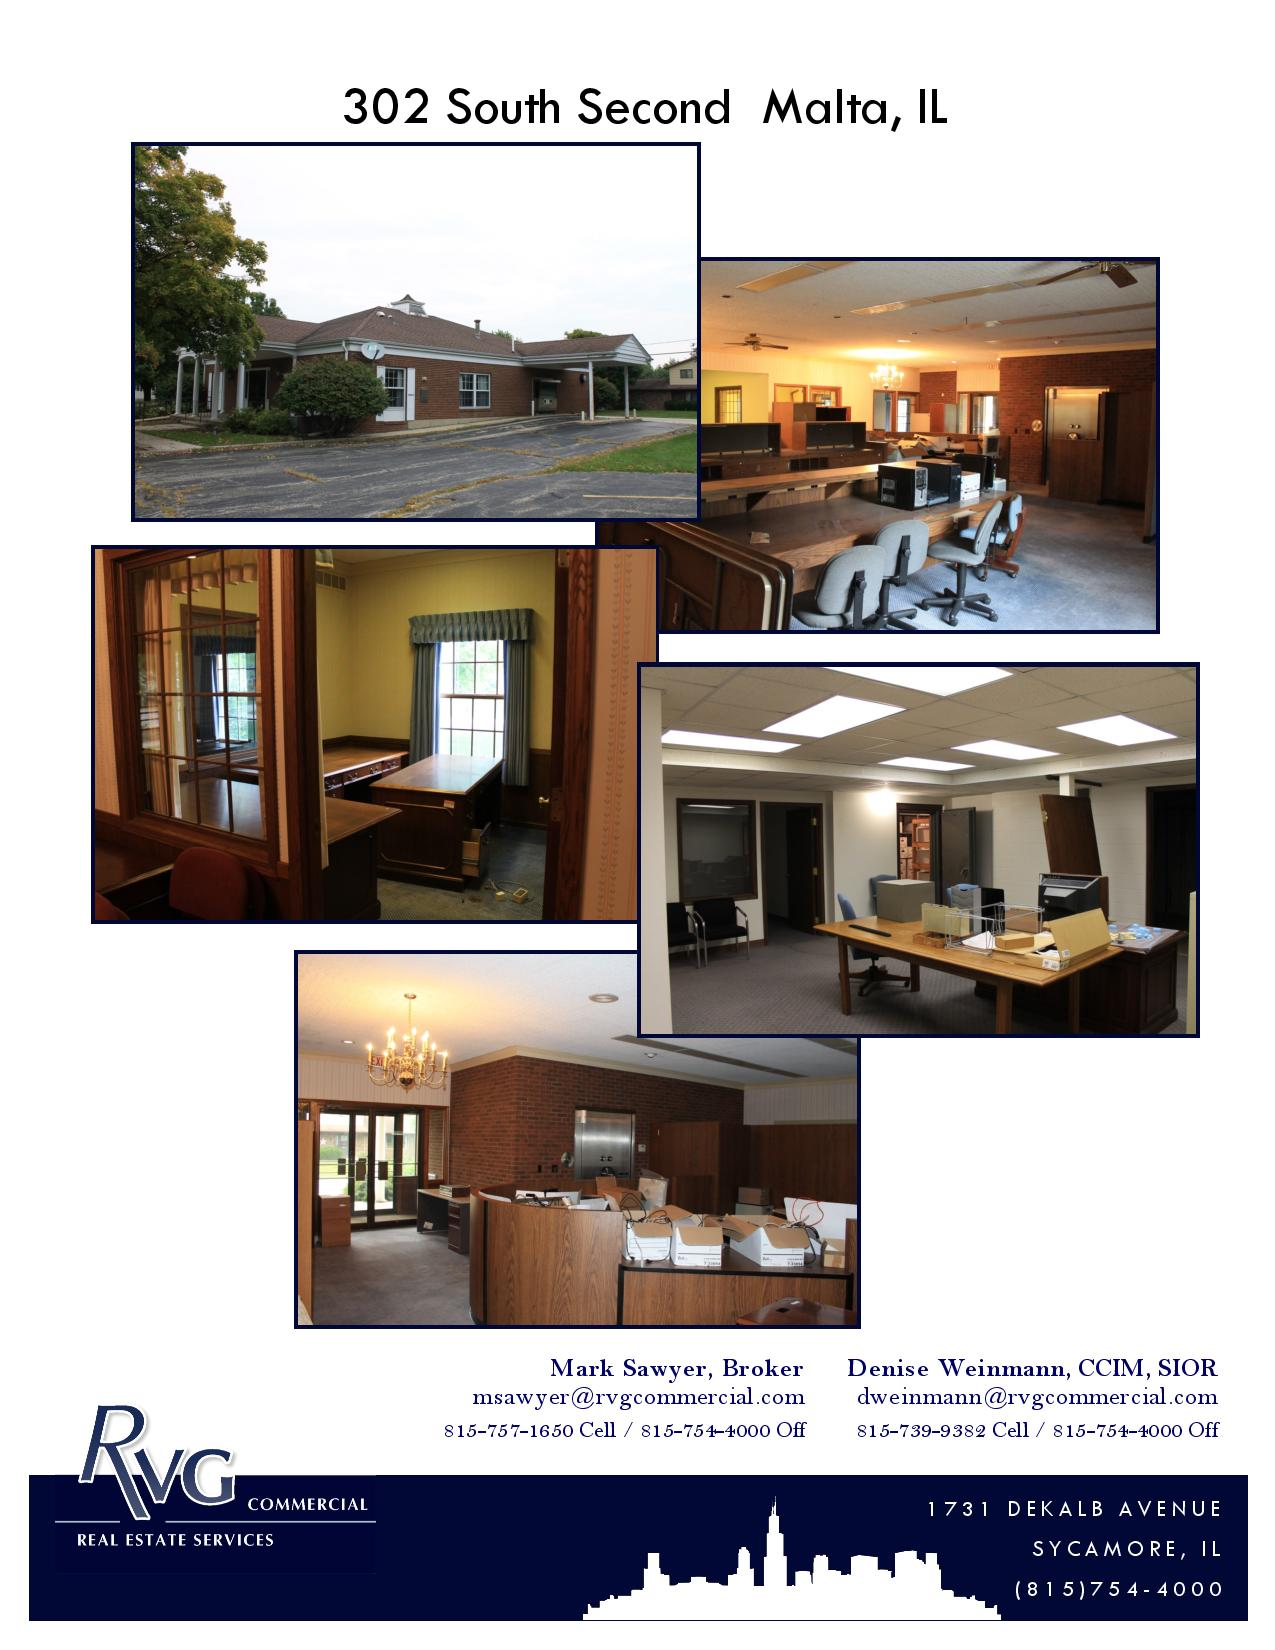 ben gordon property for dekalb county nonprofit see attached flyer for pictures the floor plan and details